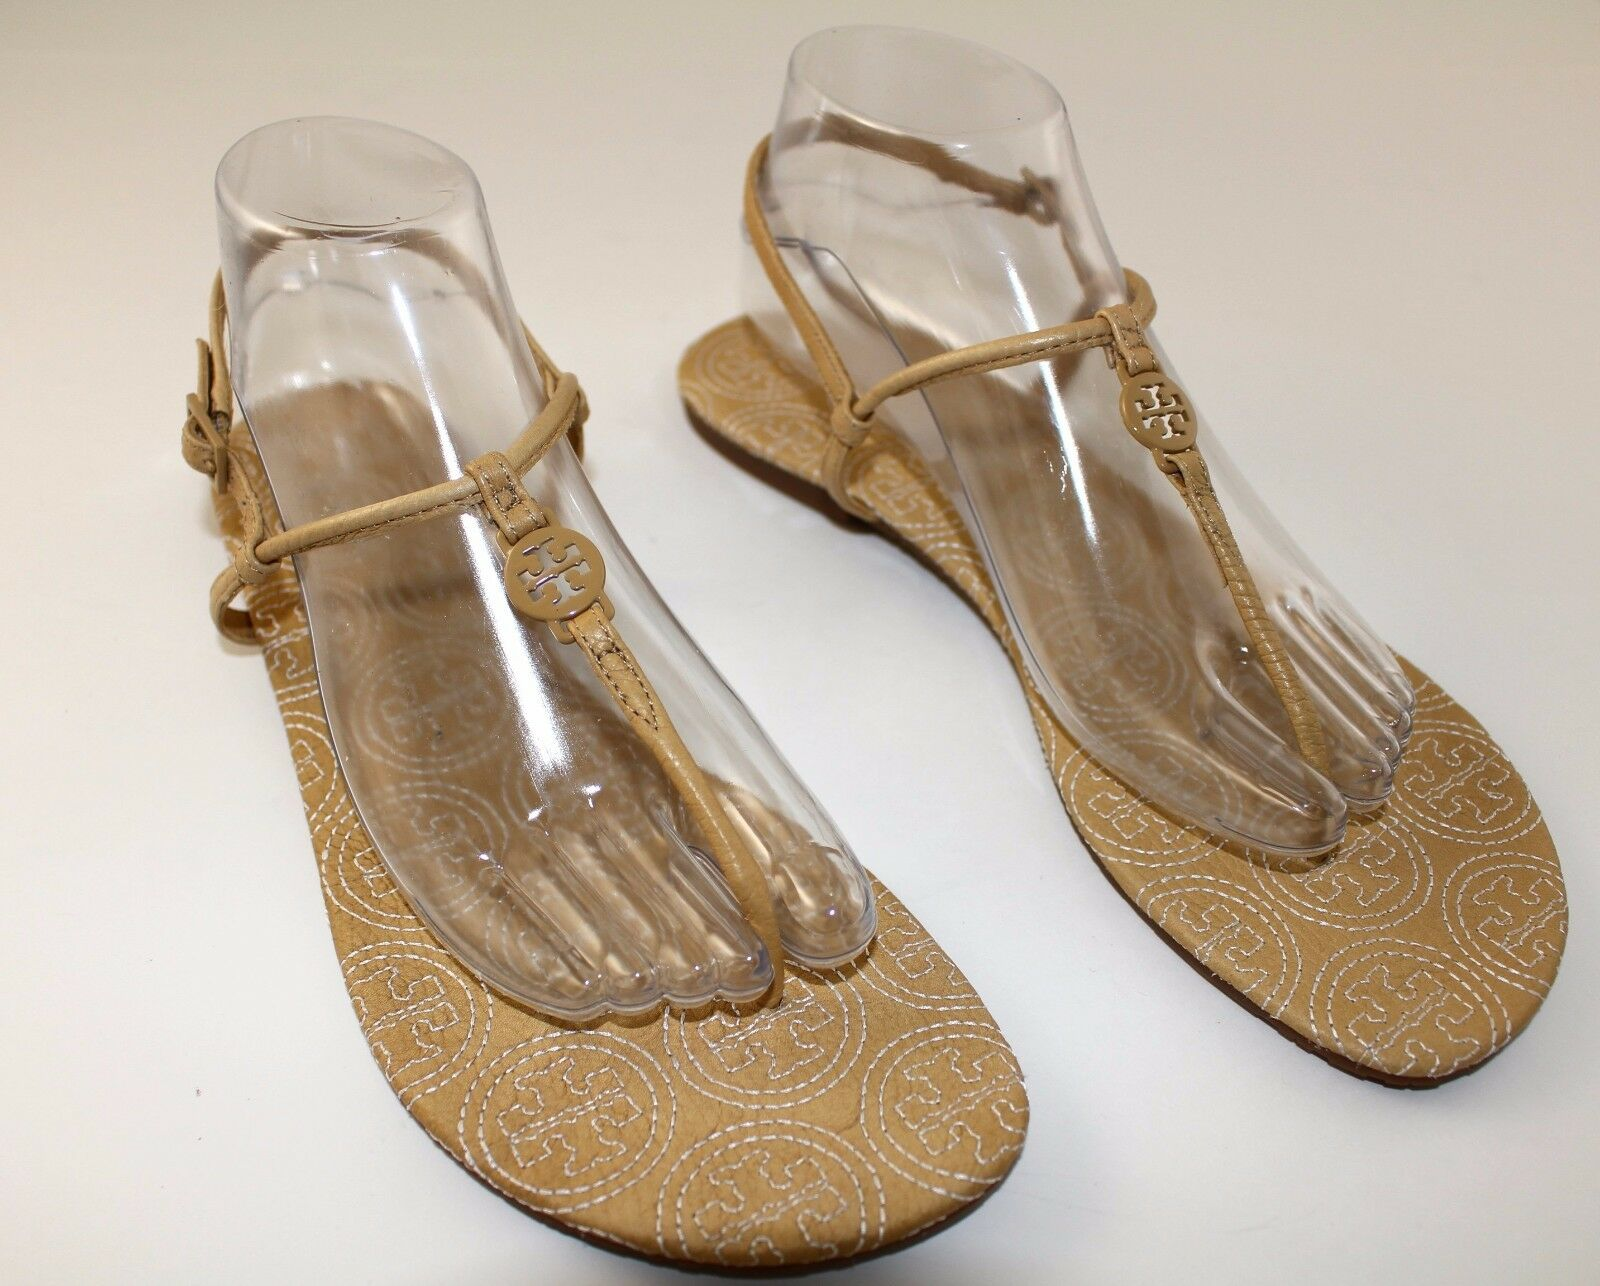 Tory Burch Beige Emmy Stitch Thong Sandals sz 10.5